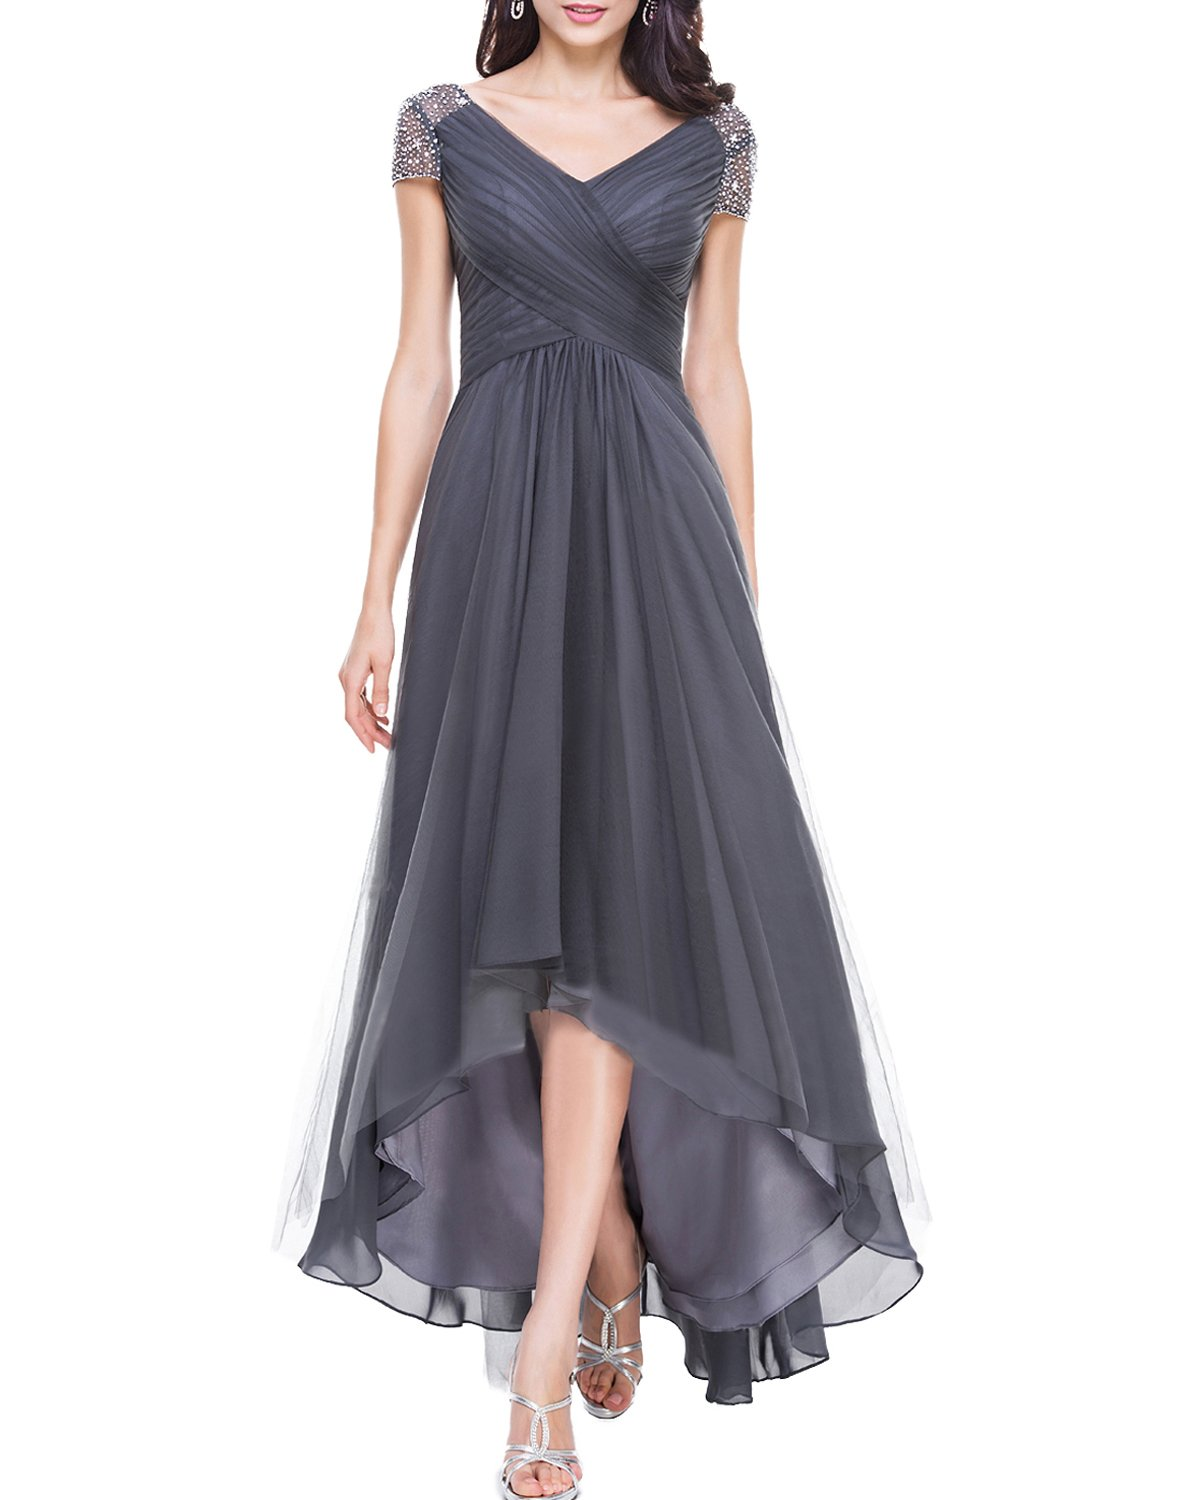 4615aab44a Alanre Women s V-Neck Ruched Corset Bridesmaid Dresses with Sleeves Beaded  High Low Prom Dress Grey 10